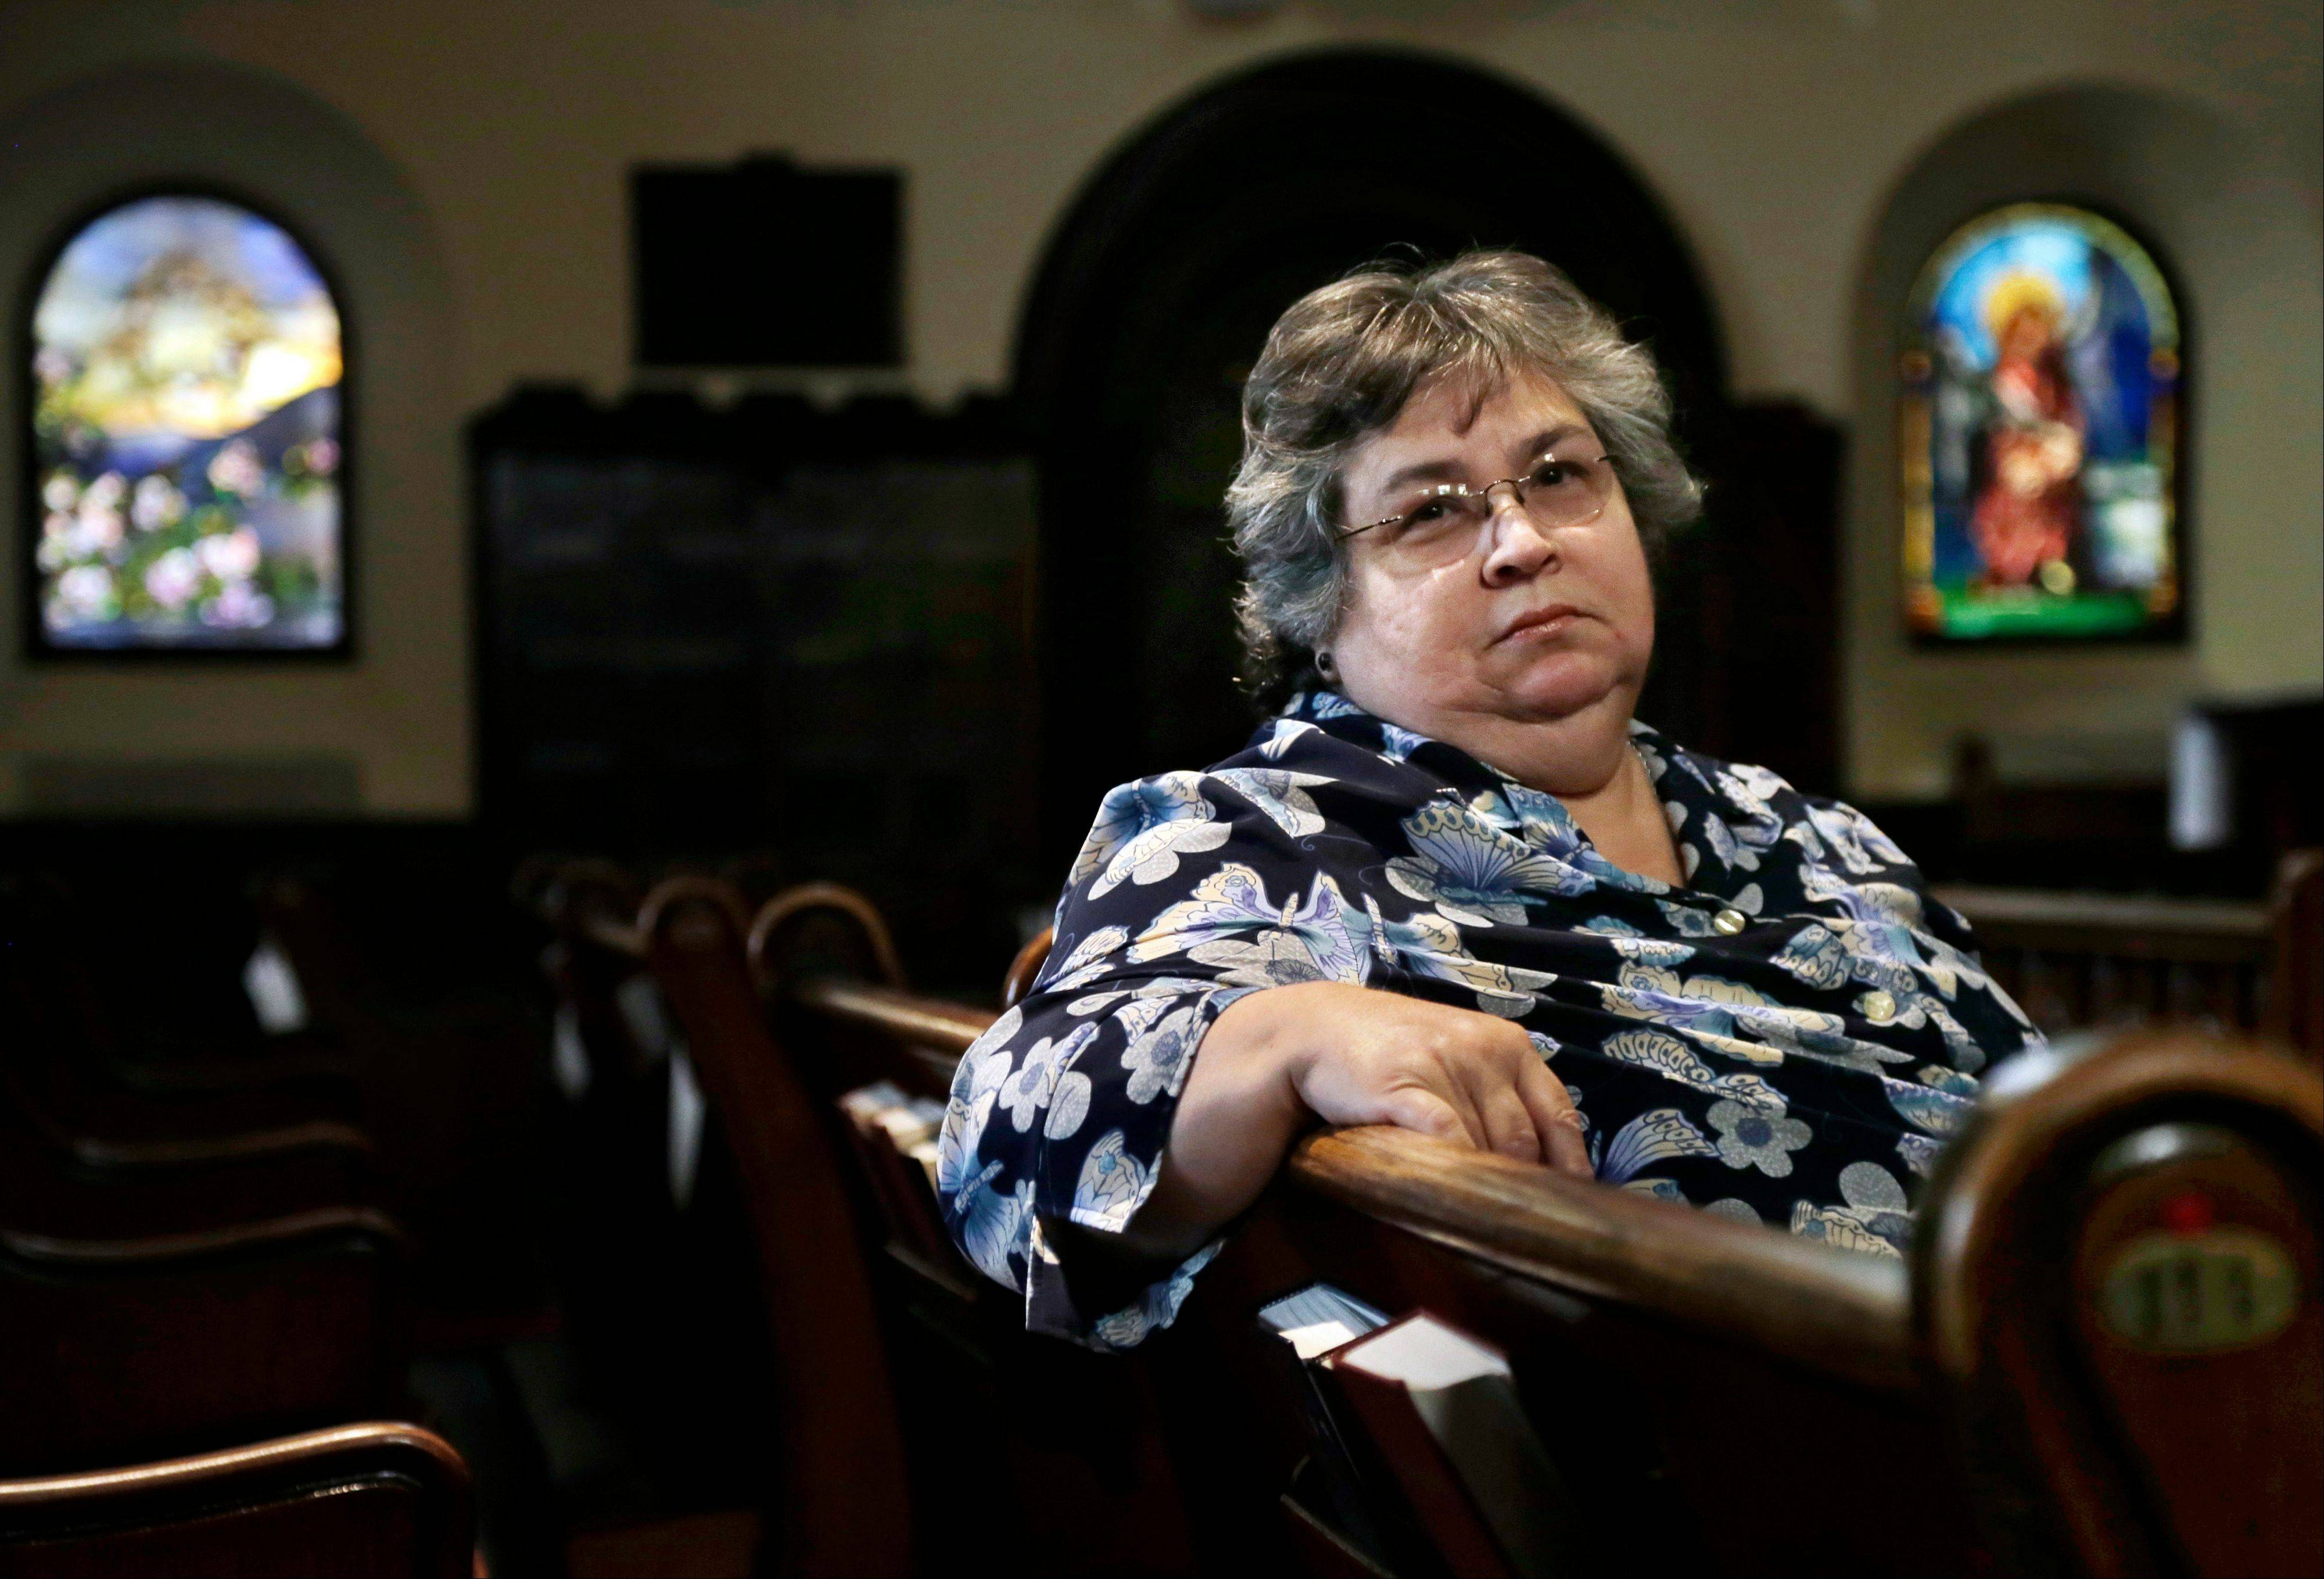 Armantina Pelaez, a former crisis counselor at St. Mary's Hospital, in Paterson, N.J., sits in Paterson's Saint Paul's Episcopal Church. The latest terms of the sale of the hospital appear to show that little more than half the pension obligation shortfall would be covered.